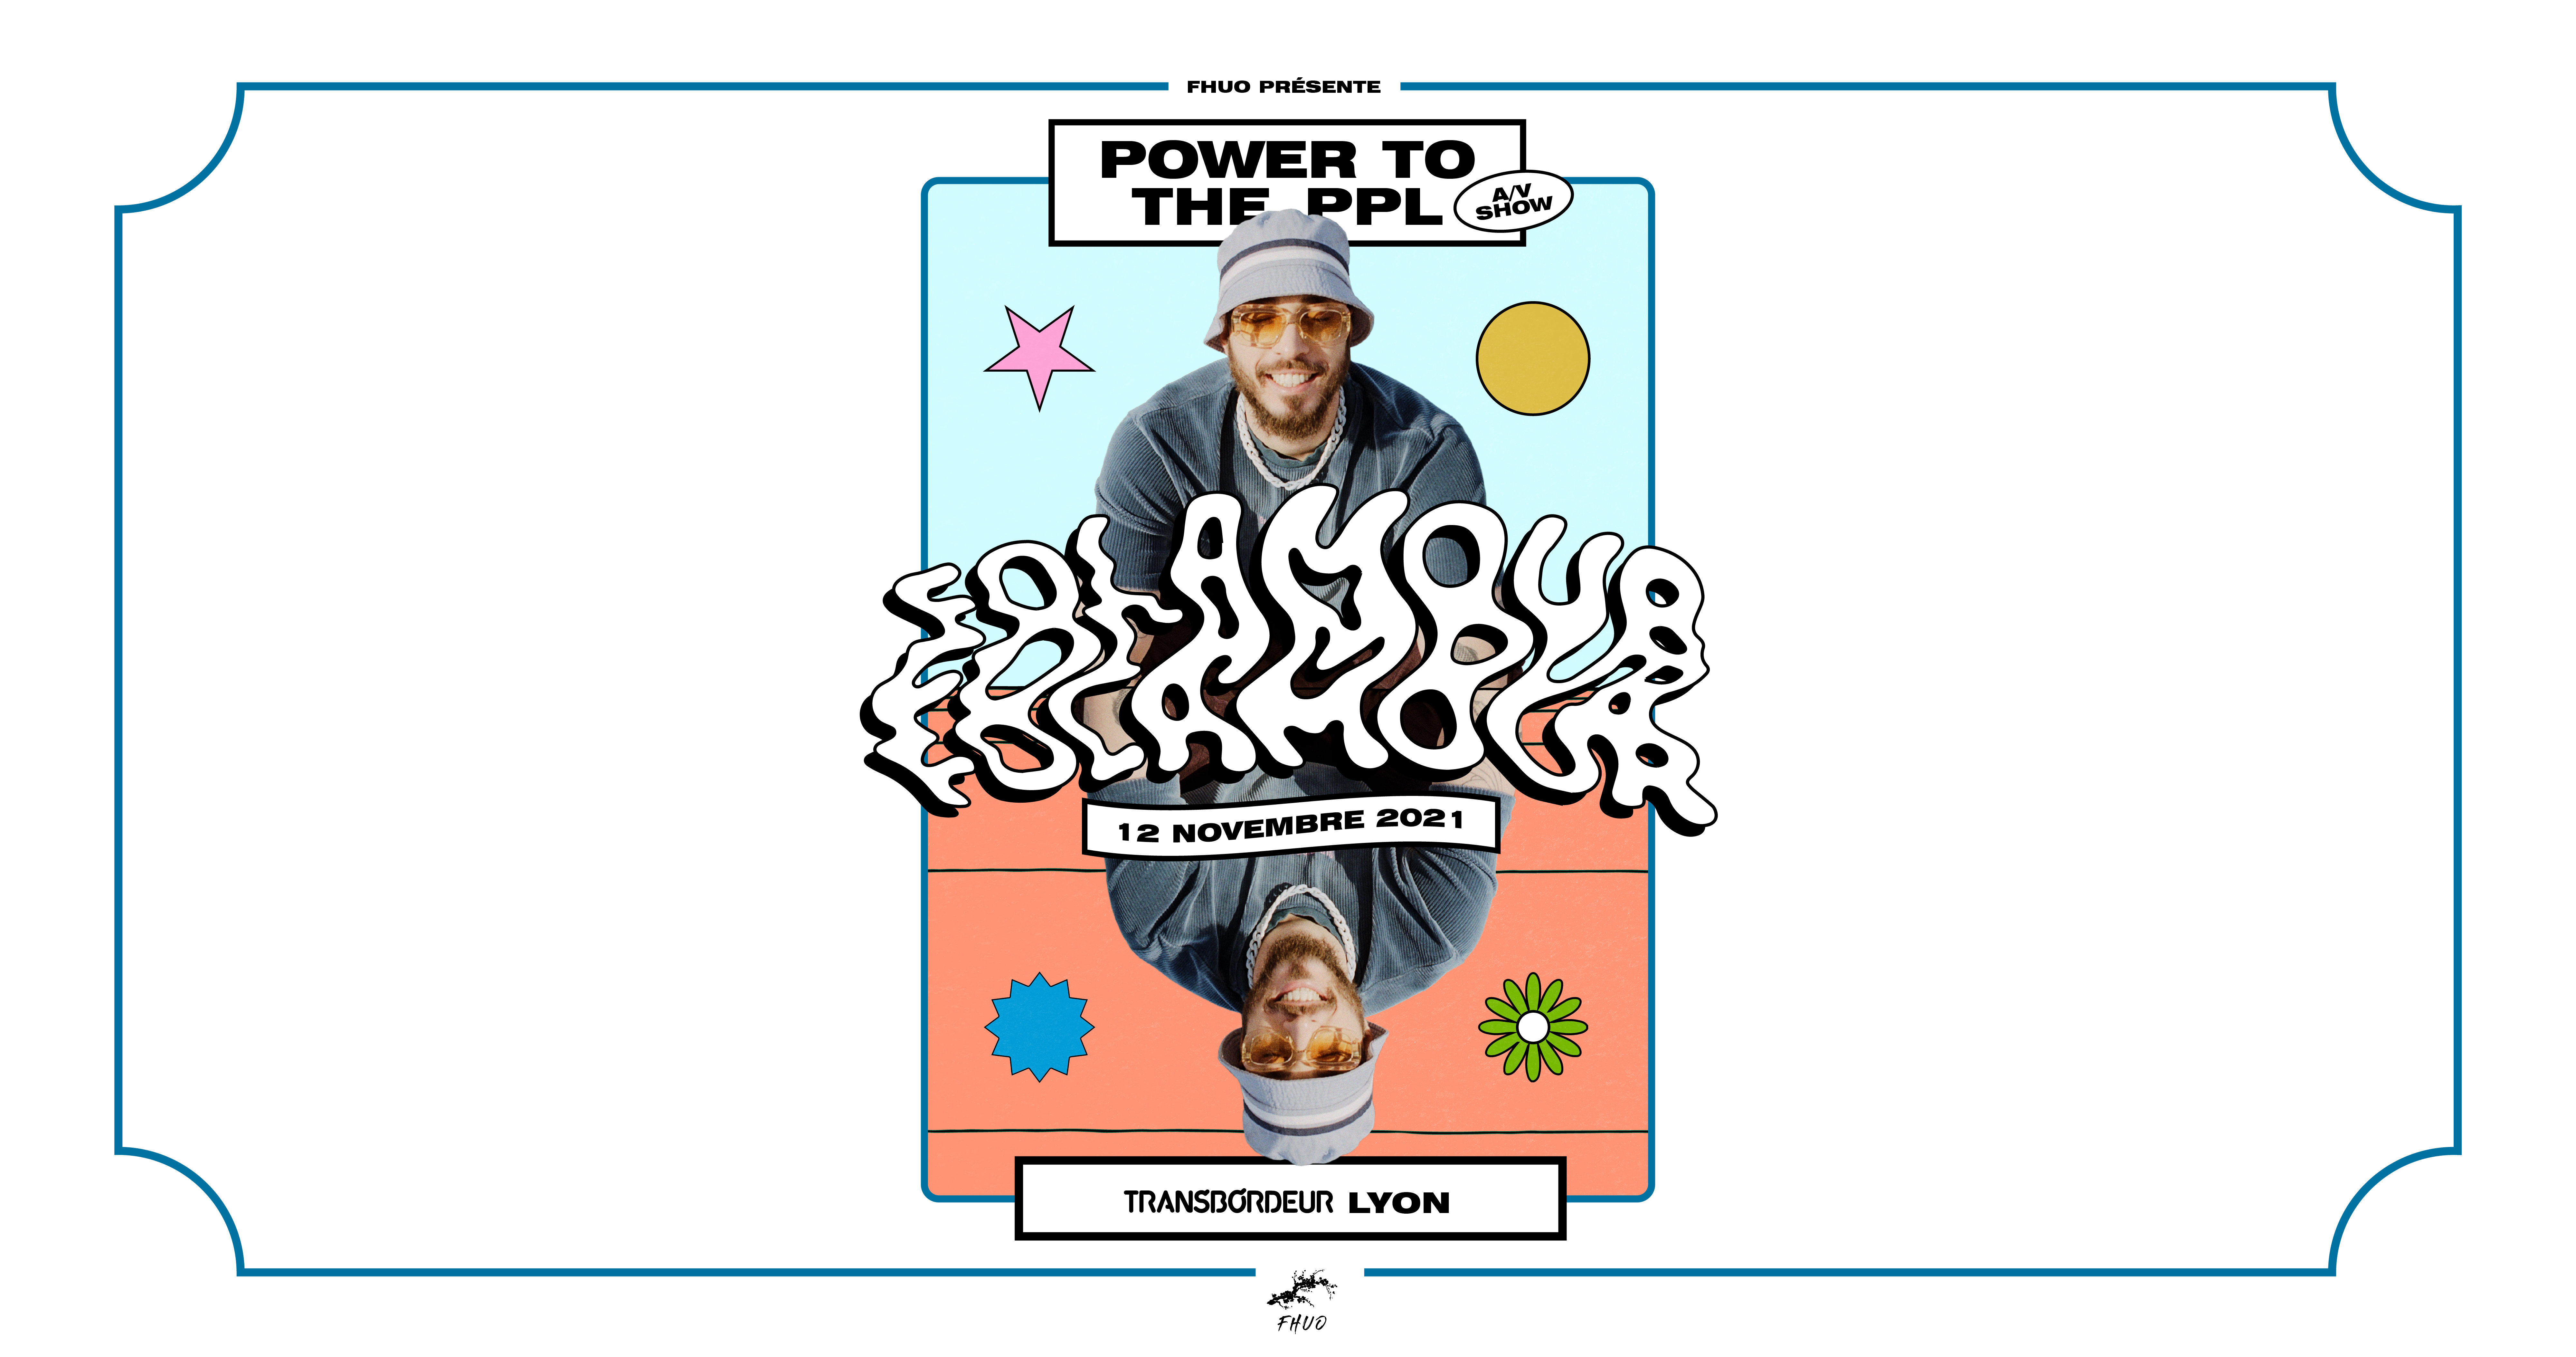 Folamour : Power to the PPL A/V